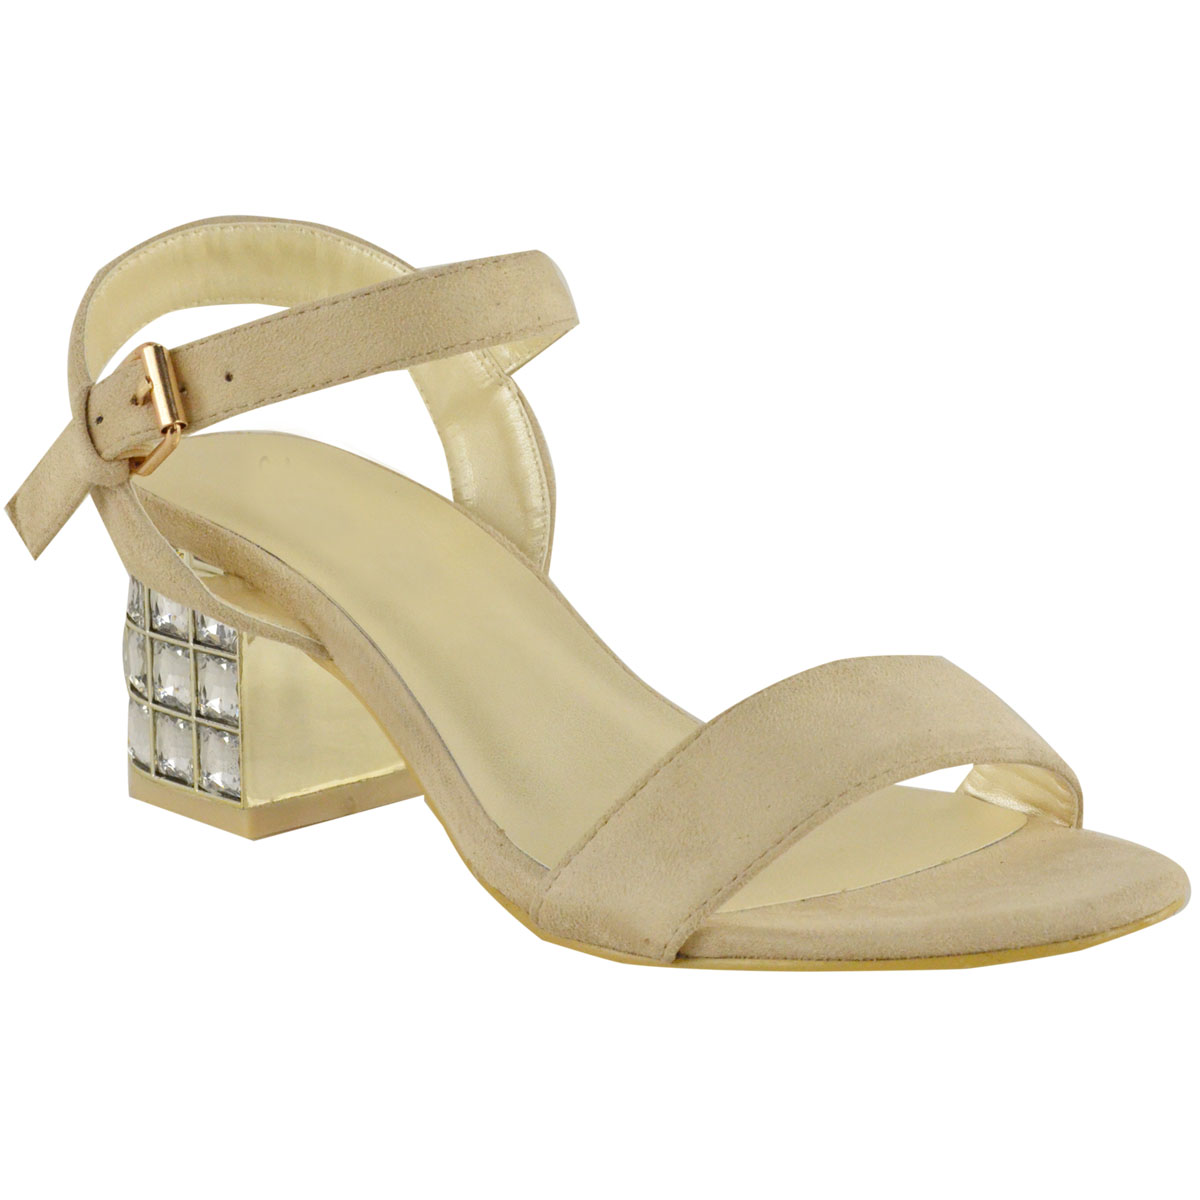 LADIES WOMENS DIAMANTE SANDALS LOW HEEL EVENING ANKLE STRAP MID HEELS PARTY SIZE